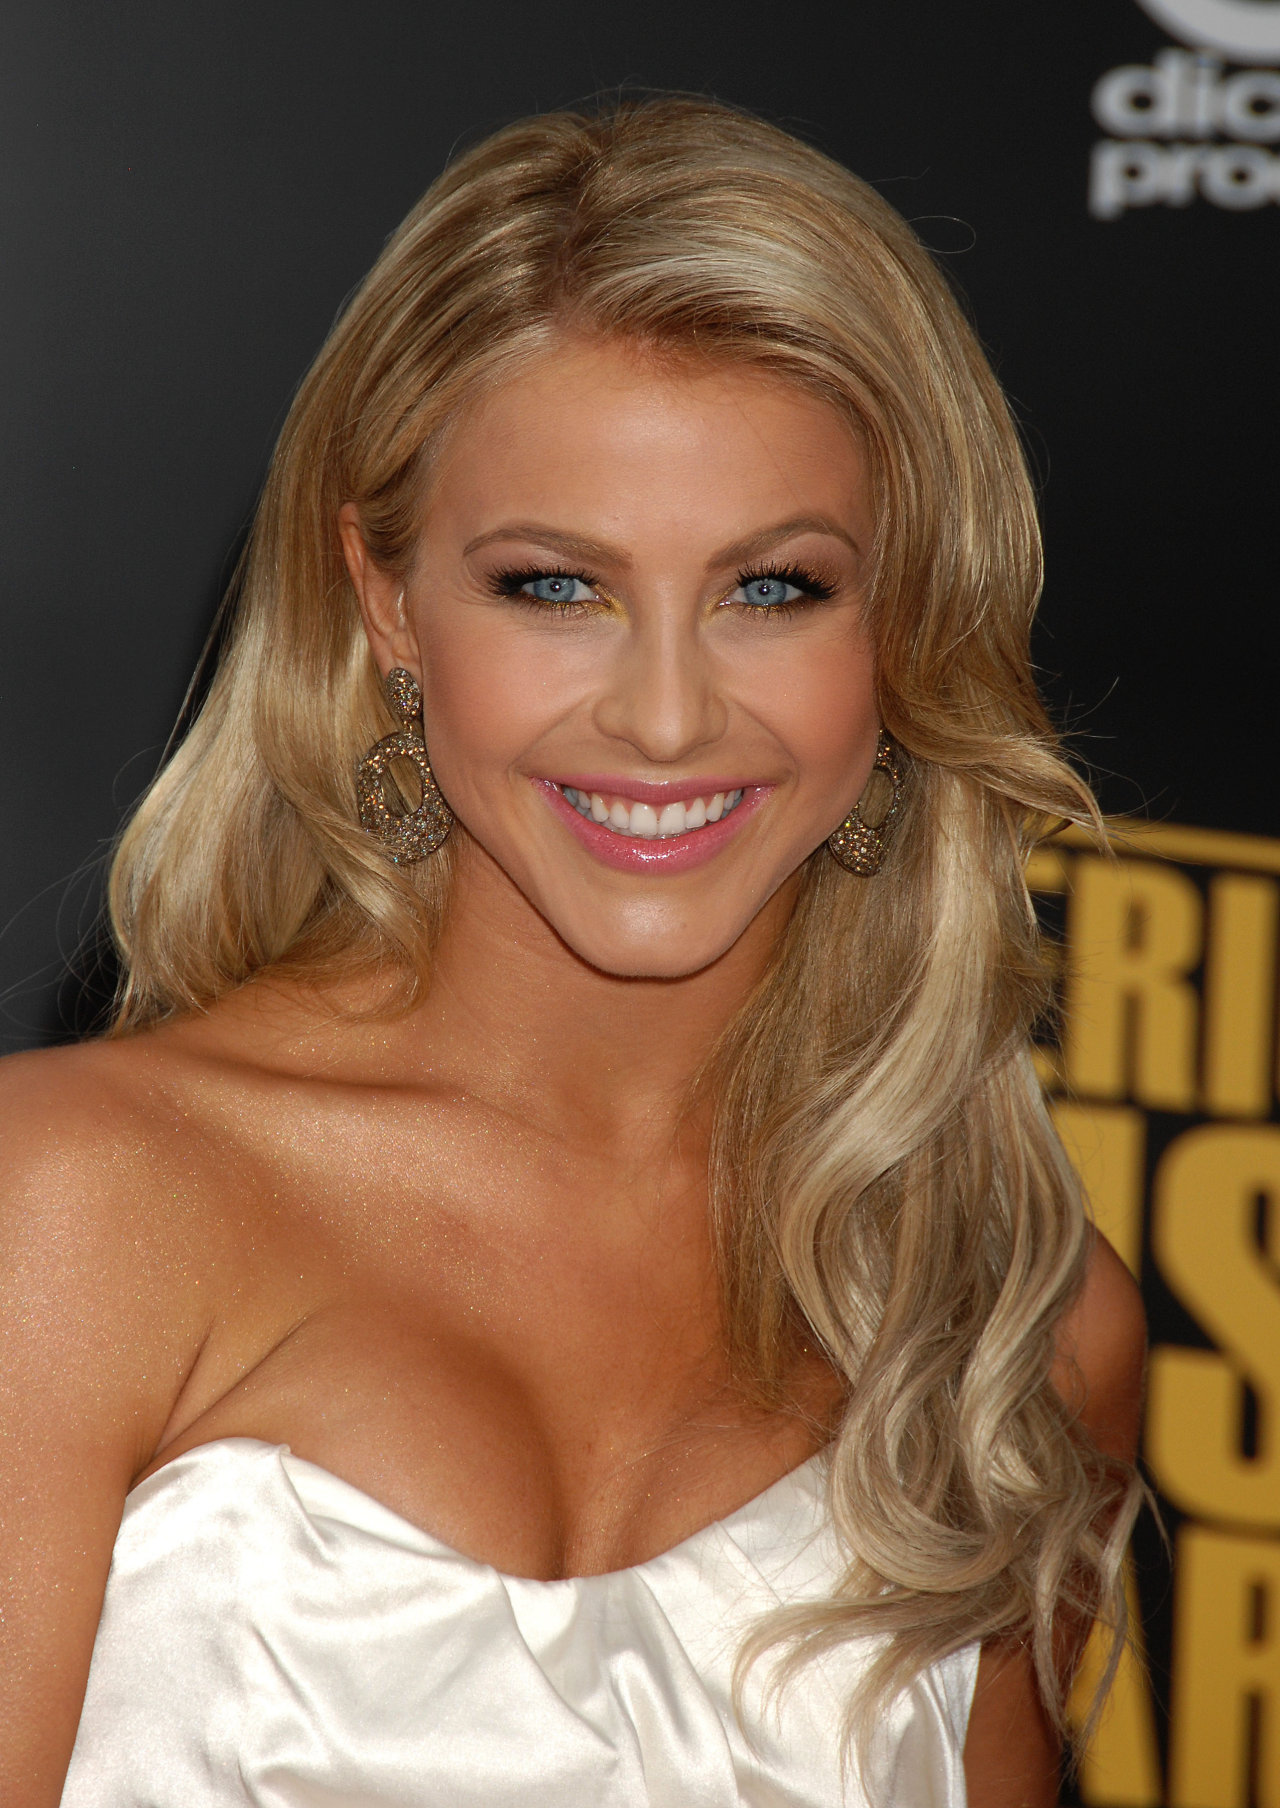 Julianne Hough Iphone Sexy Wallpapers